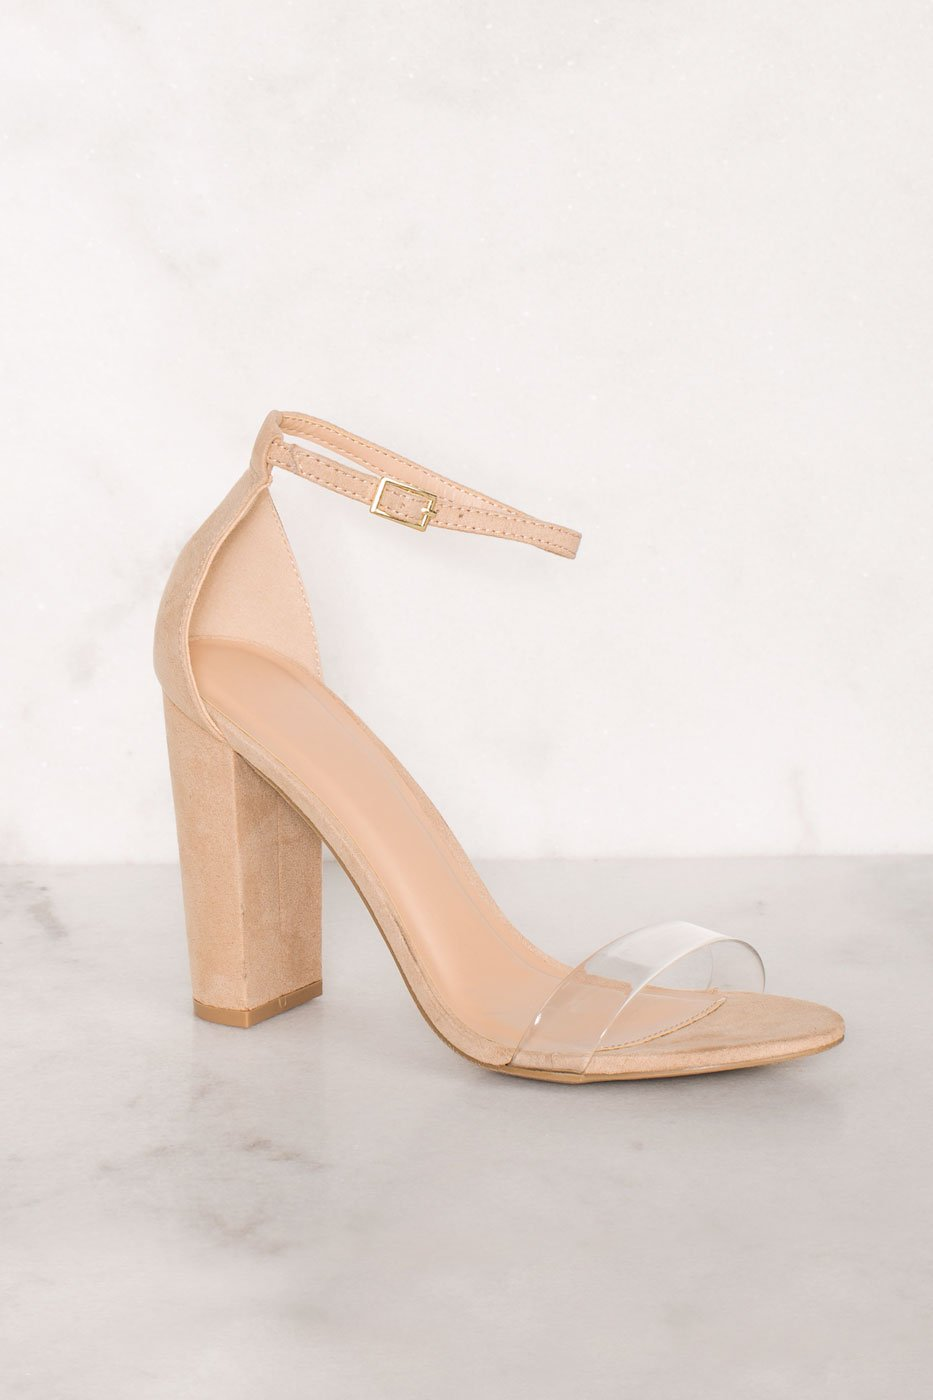 0927702b5f1b ... Shoes - Cynthia Nude Vegan Suede Ankle Strap Heels - Nude ...